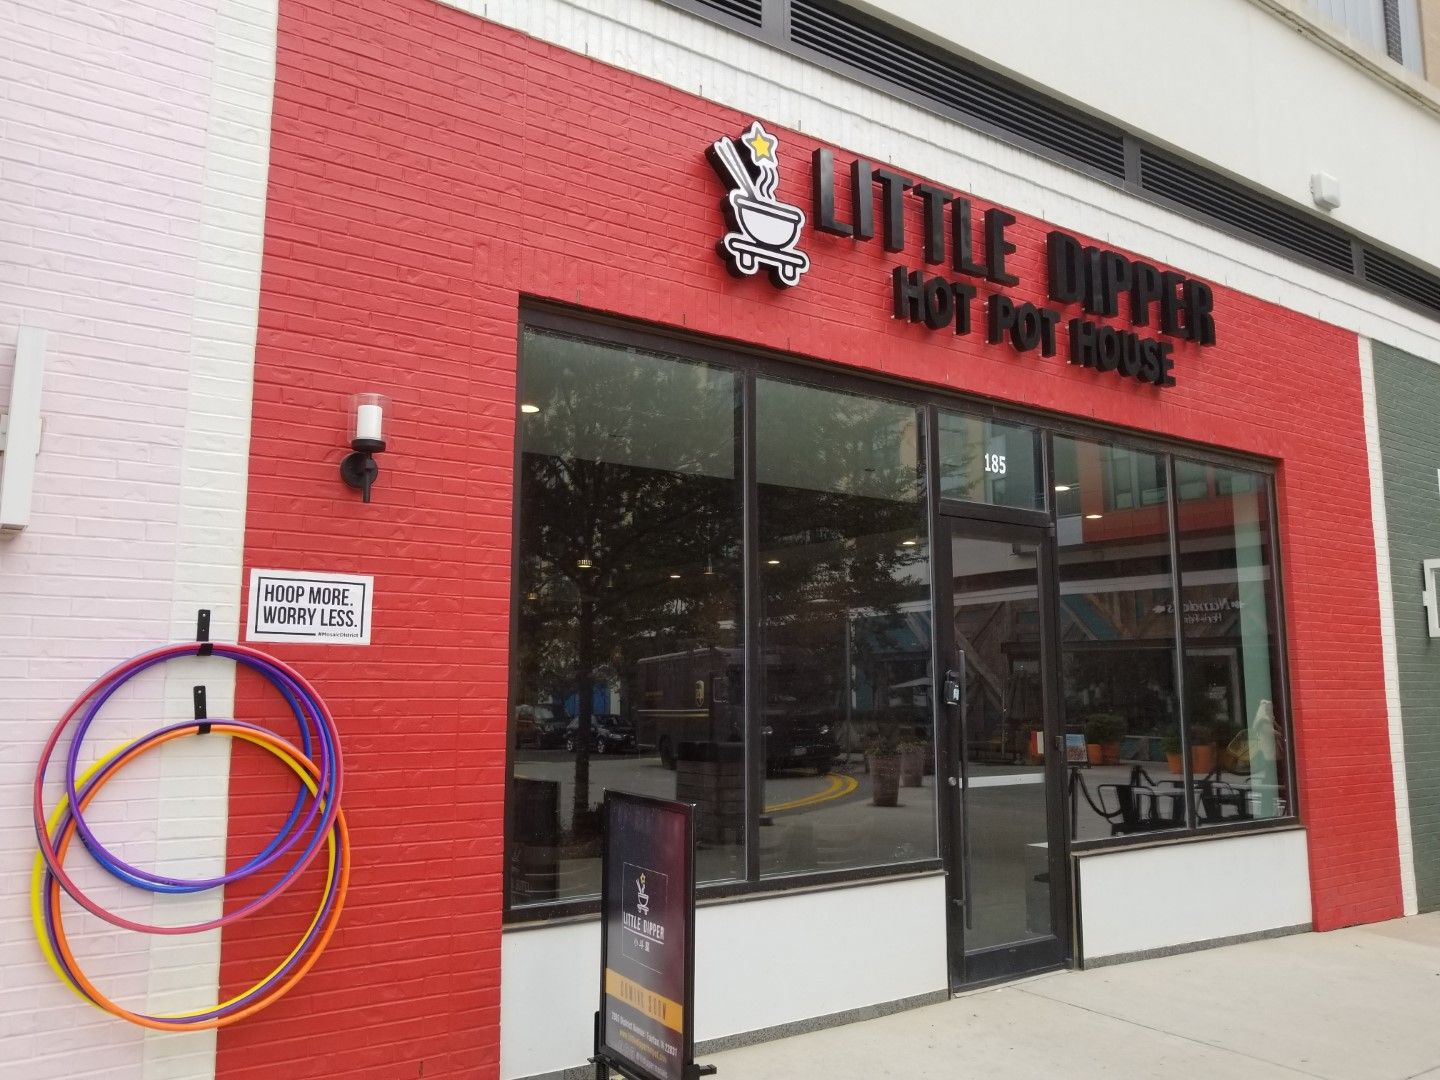 Little Dipper Hot Pot House Expands Its Roots in the D.C. Metropolitan Area